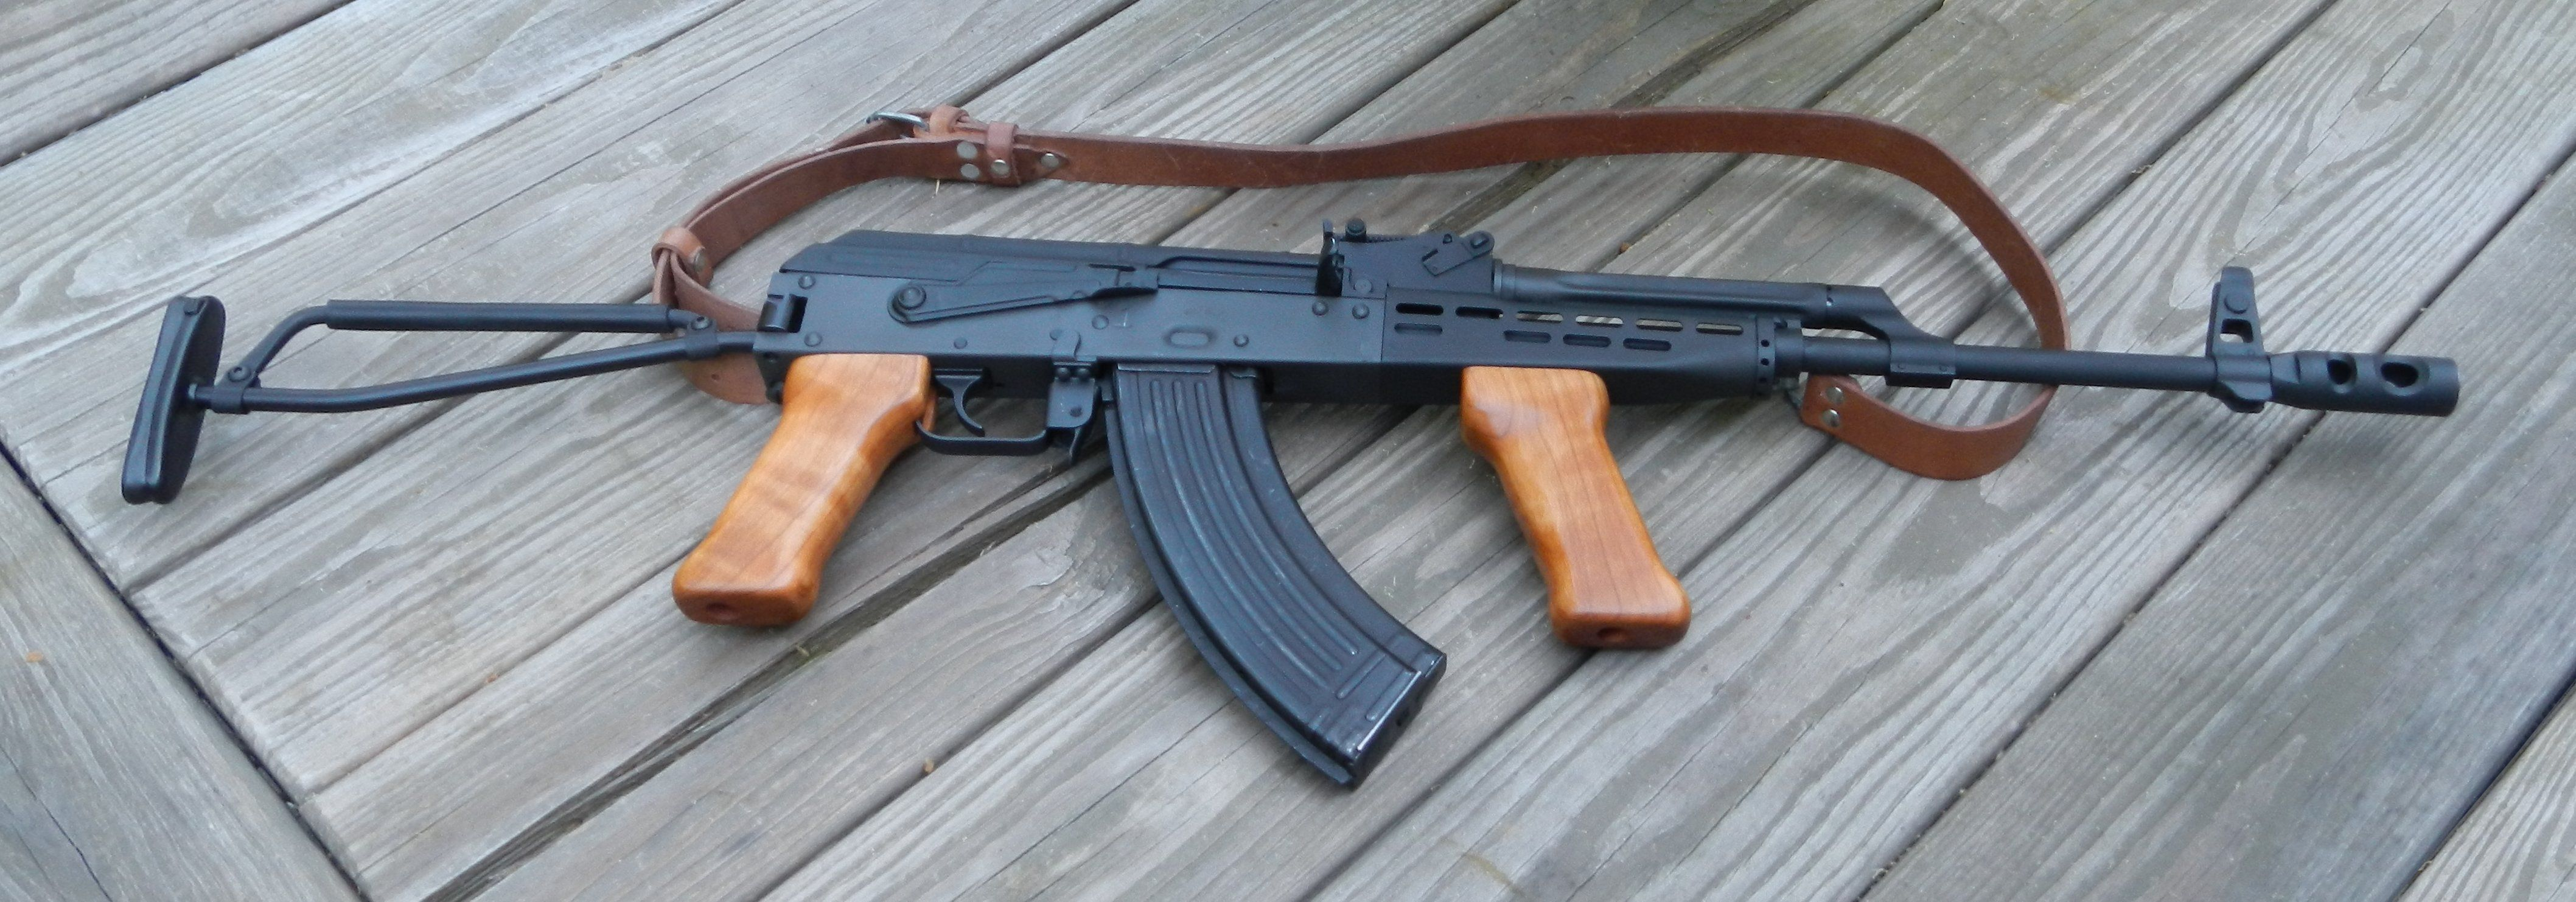 Hungarian AMD-65 with cheek riser and cherry grips added